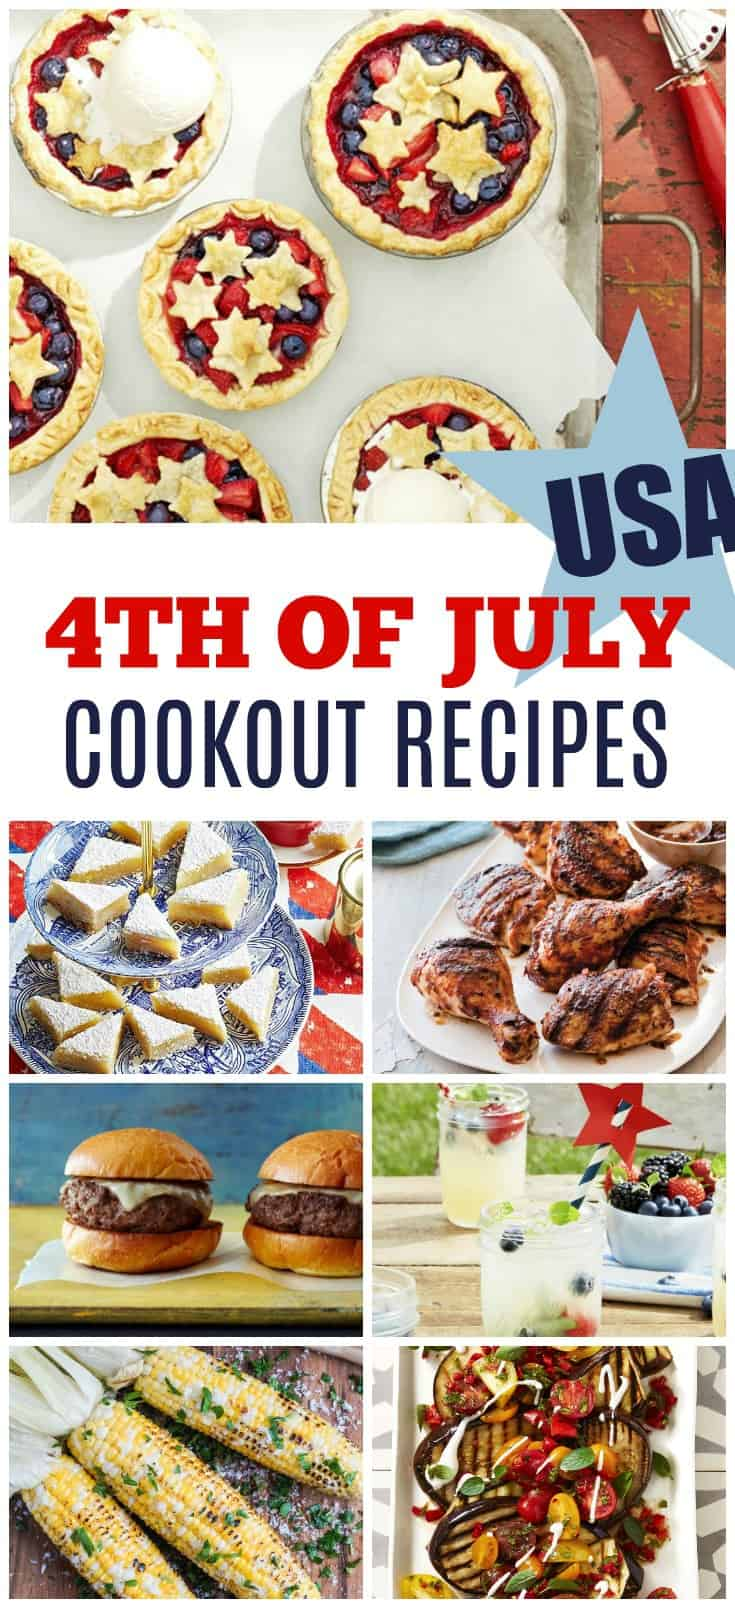 Easy 4th of July Cookout Recipes and Ideas | 31Daily.comsy 4th of July Cookout Recipes and Ideas | 31Daily.com